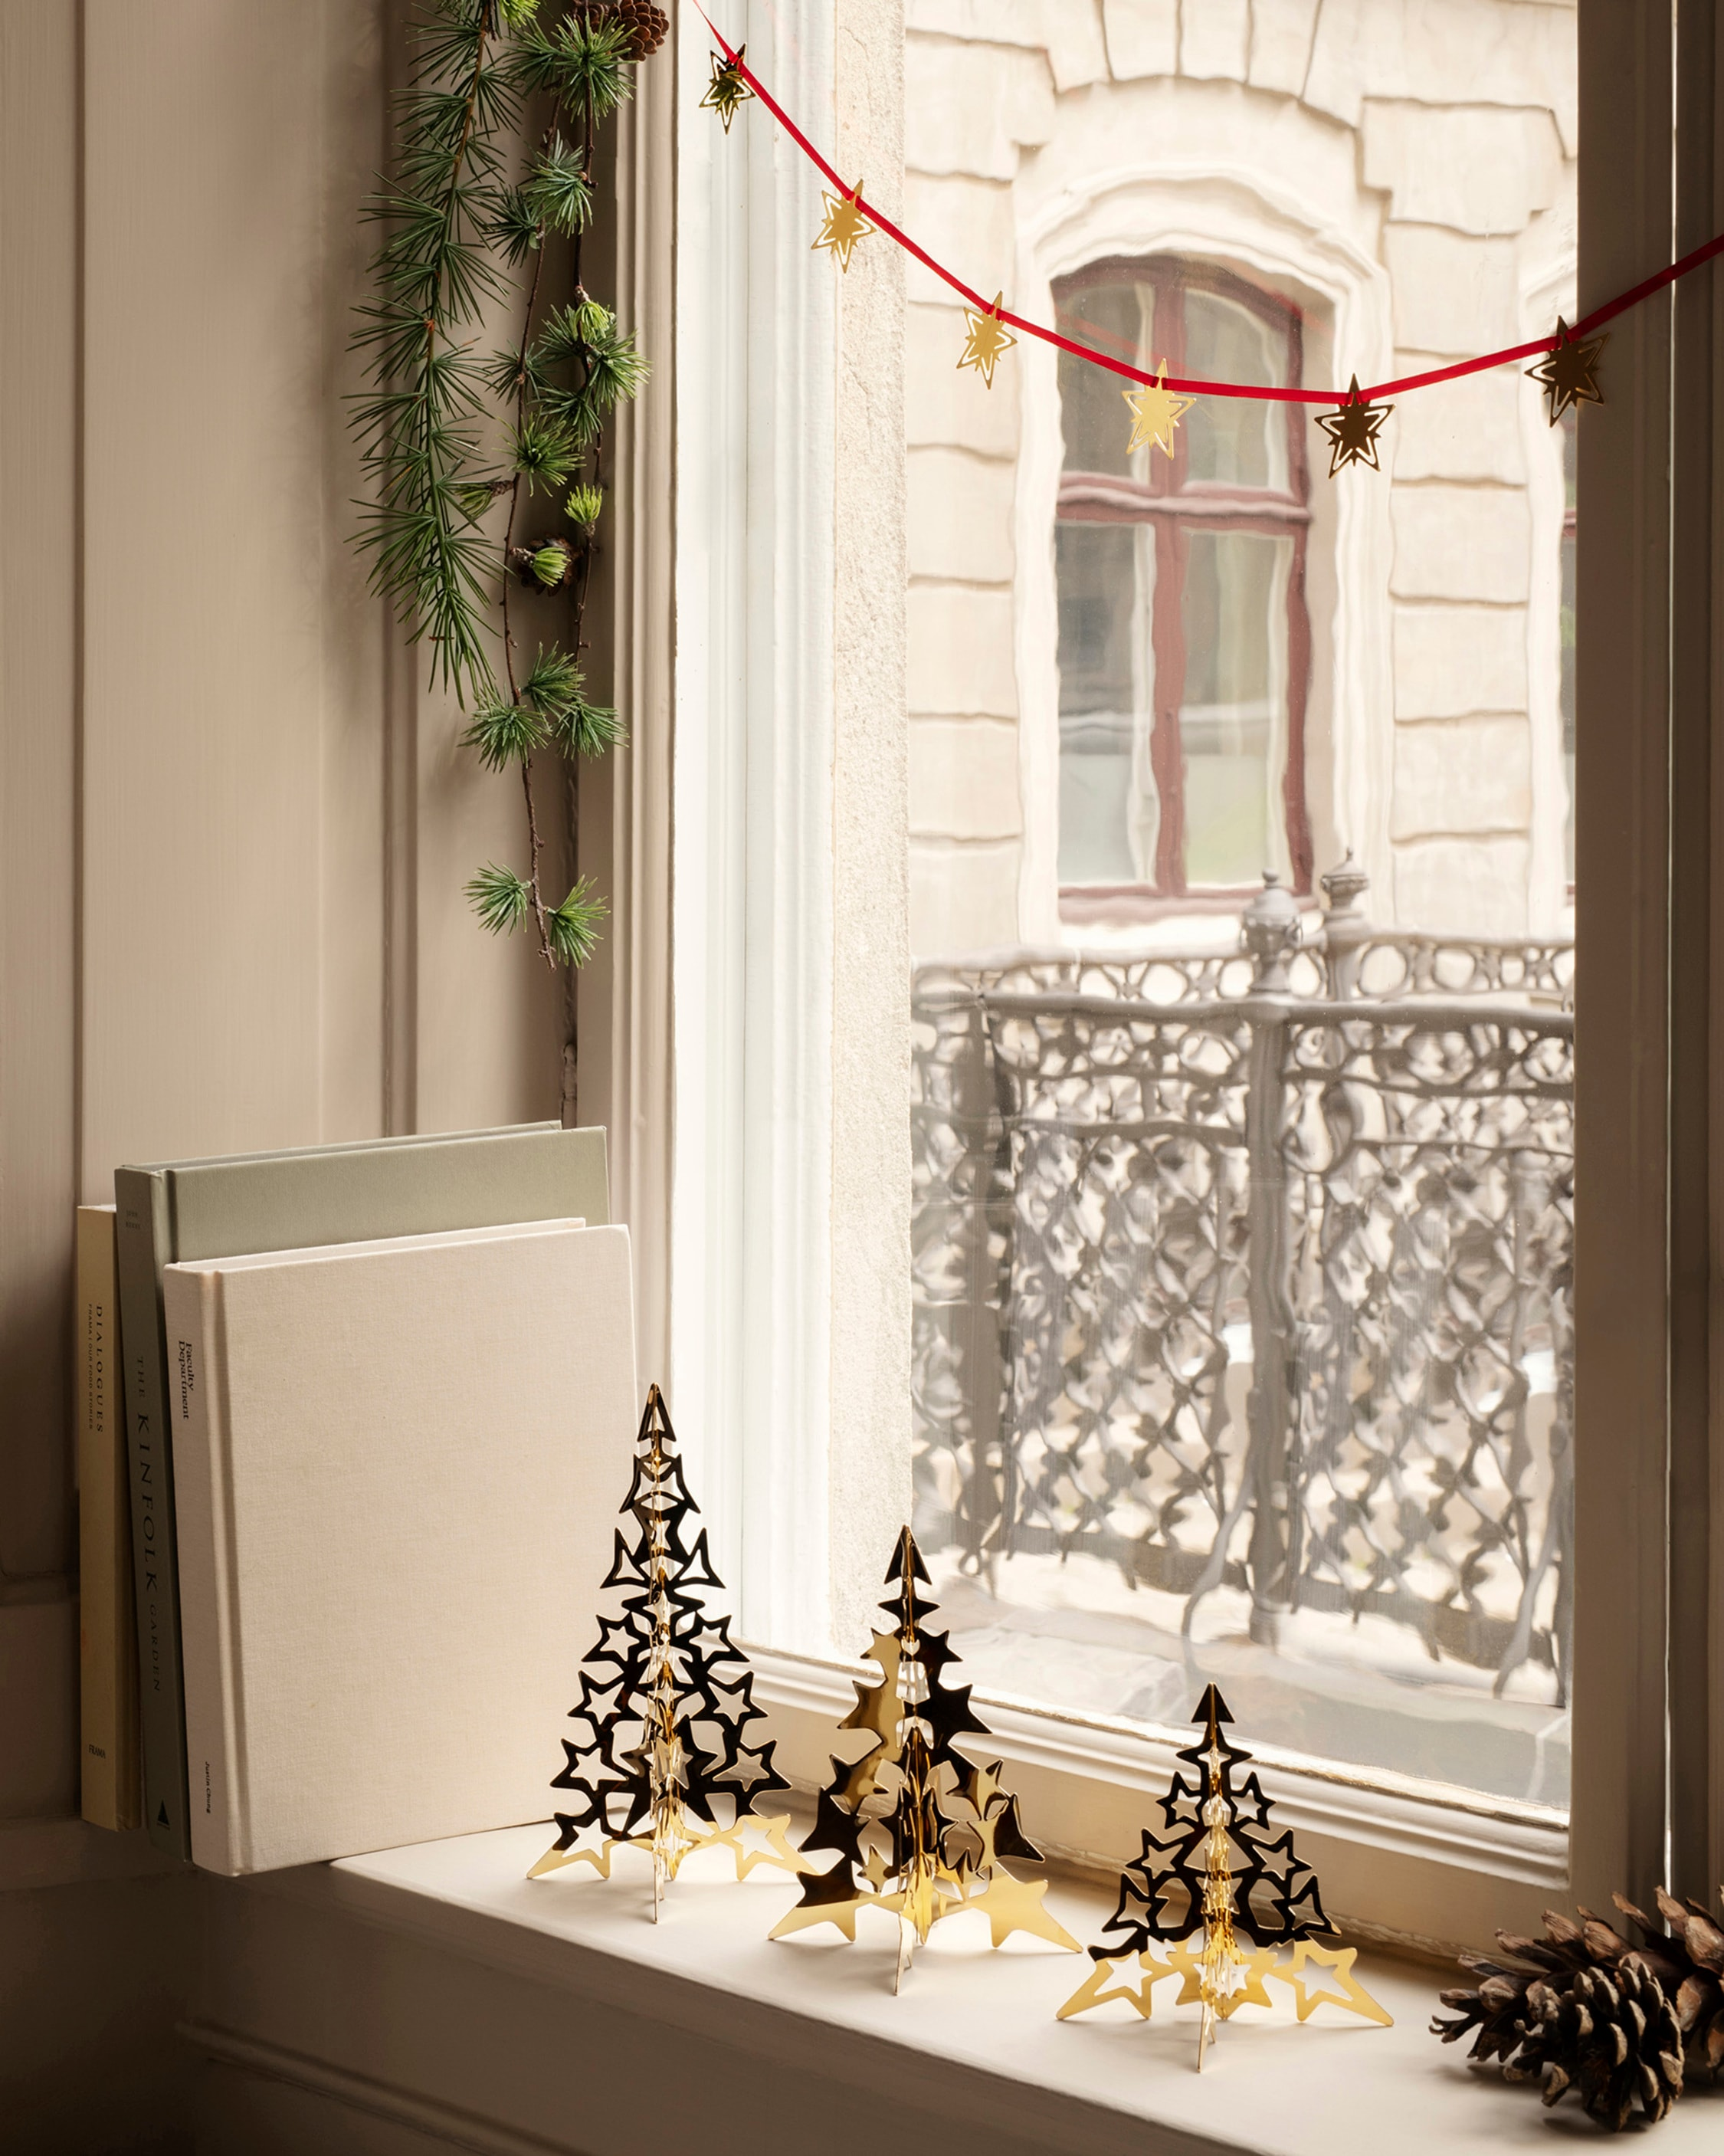 Georg Jensen Christmas Collection 2021 Gold Tree Star - Small 2